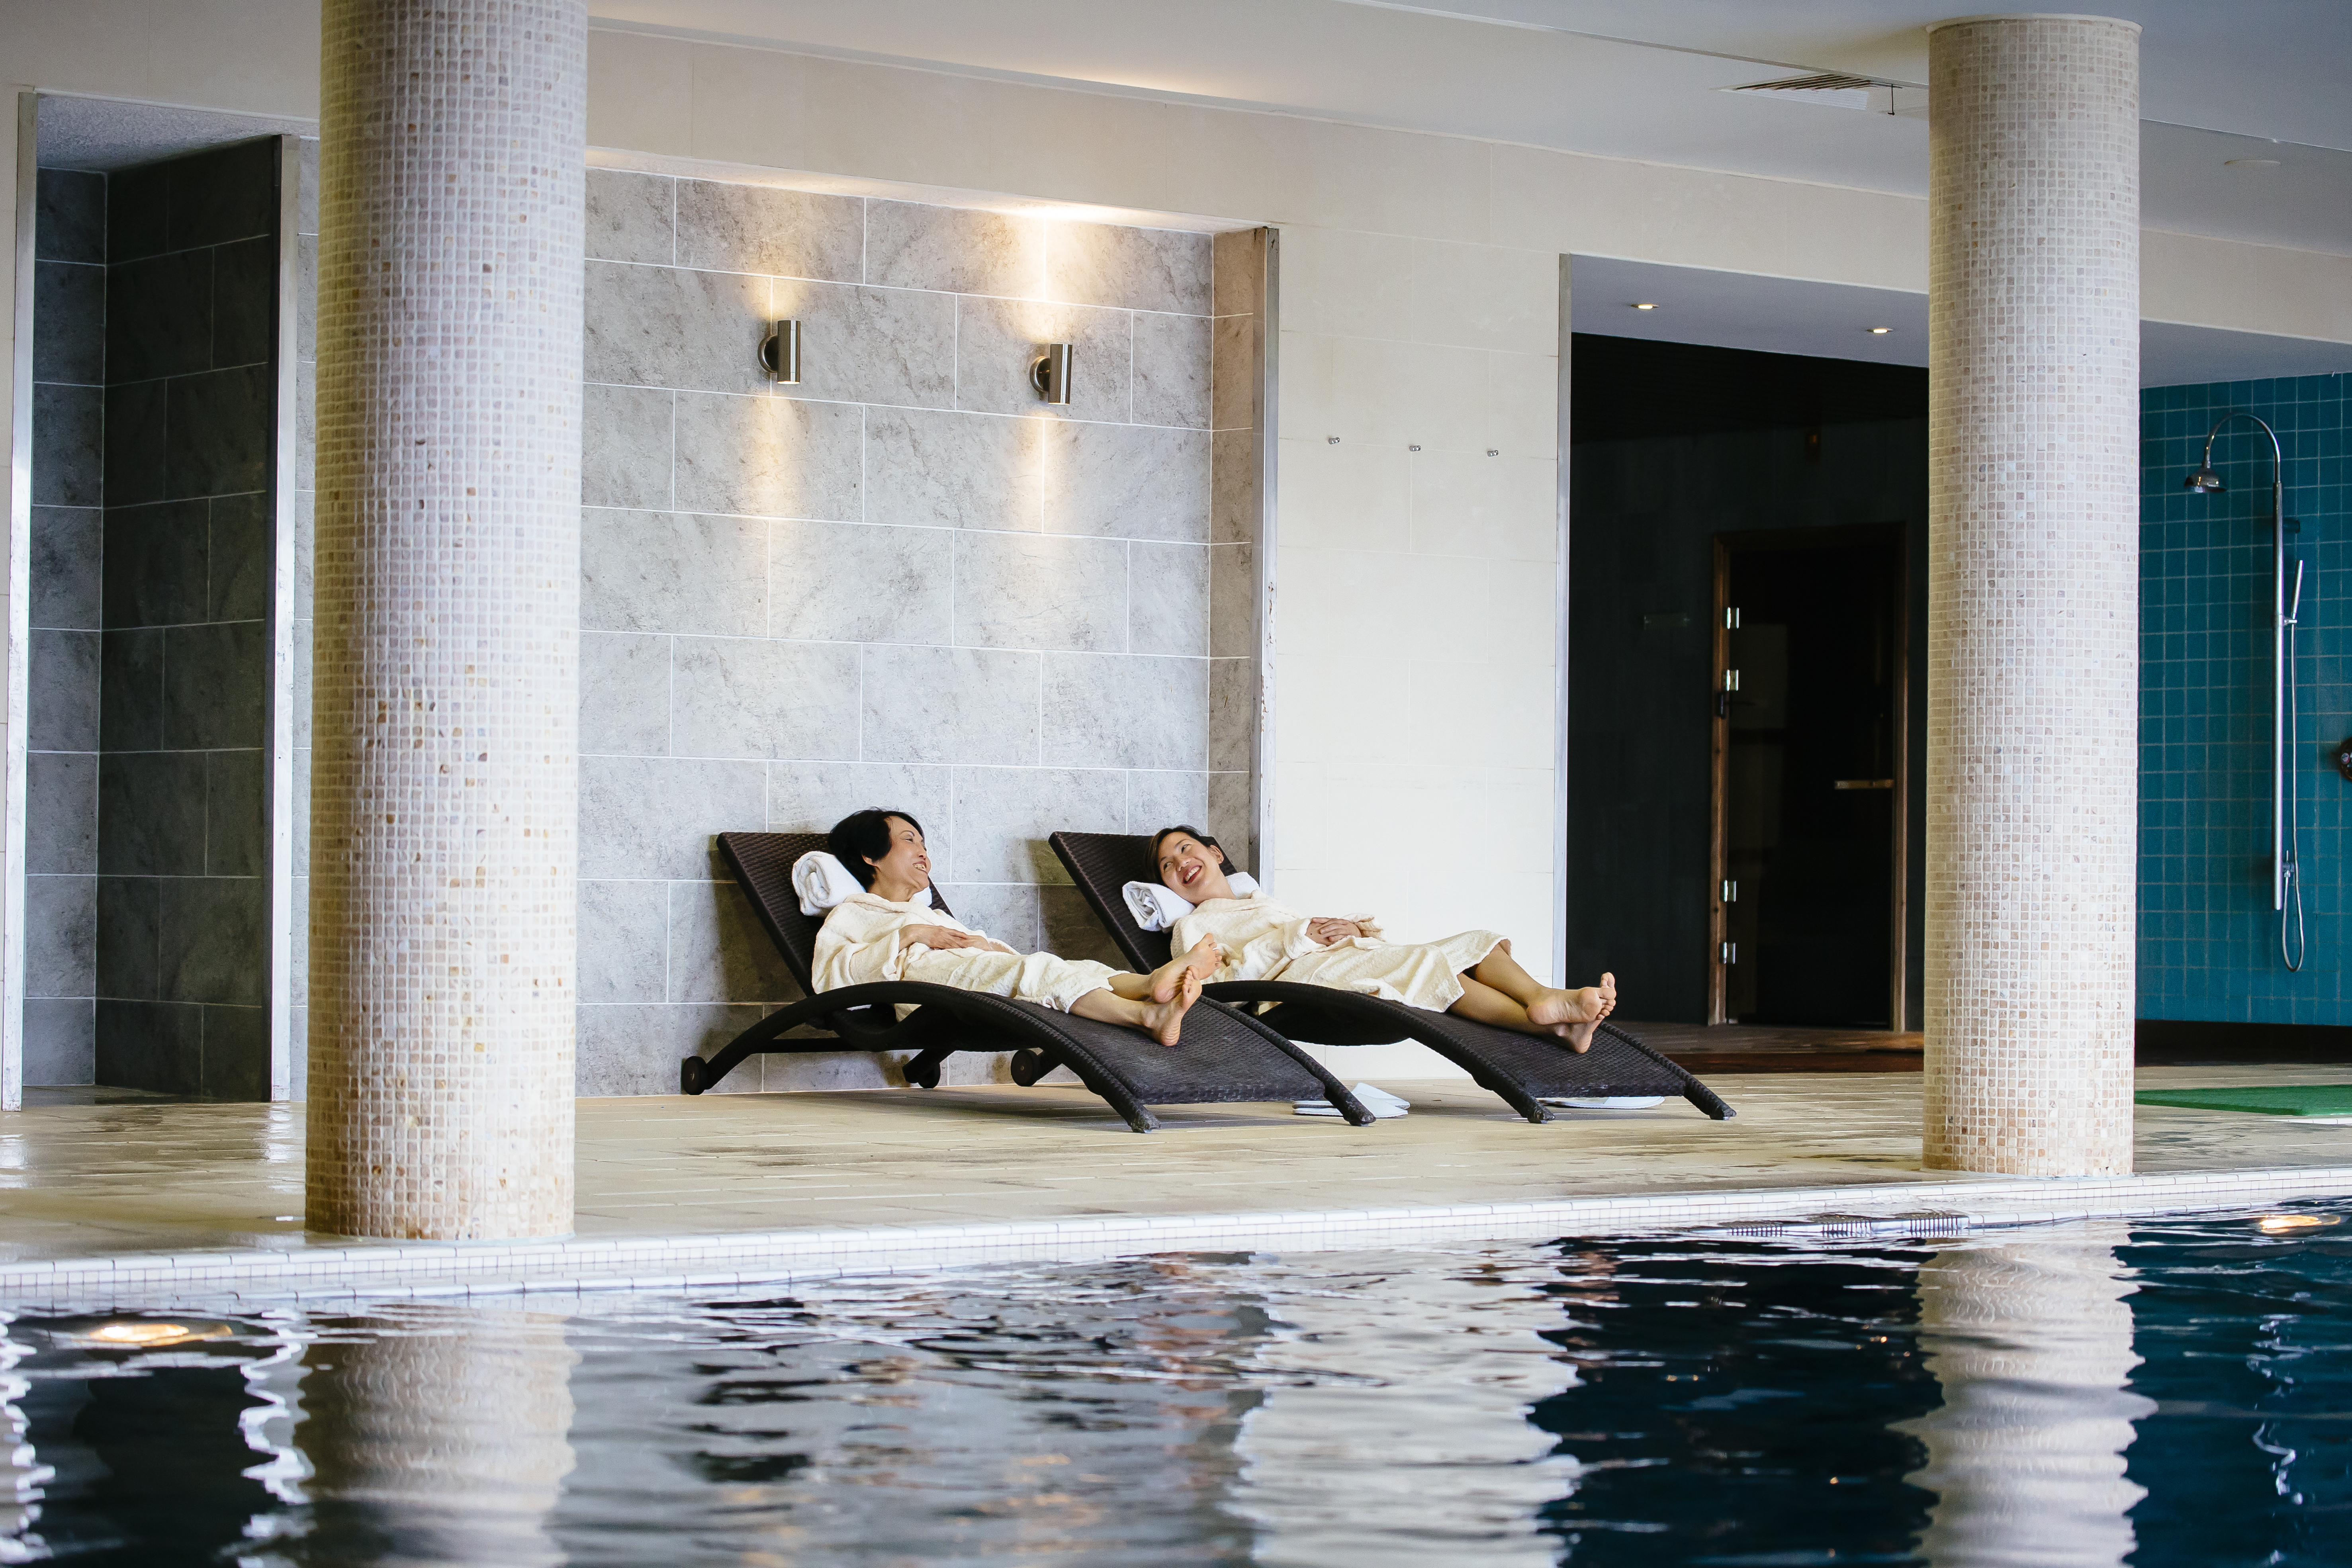 A Chinese mother and daughter relaxing by the indoor swimming pool